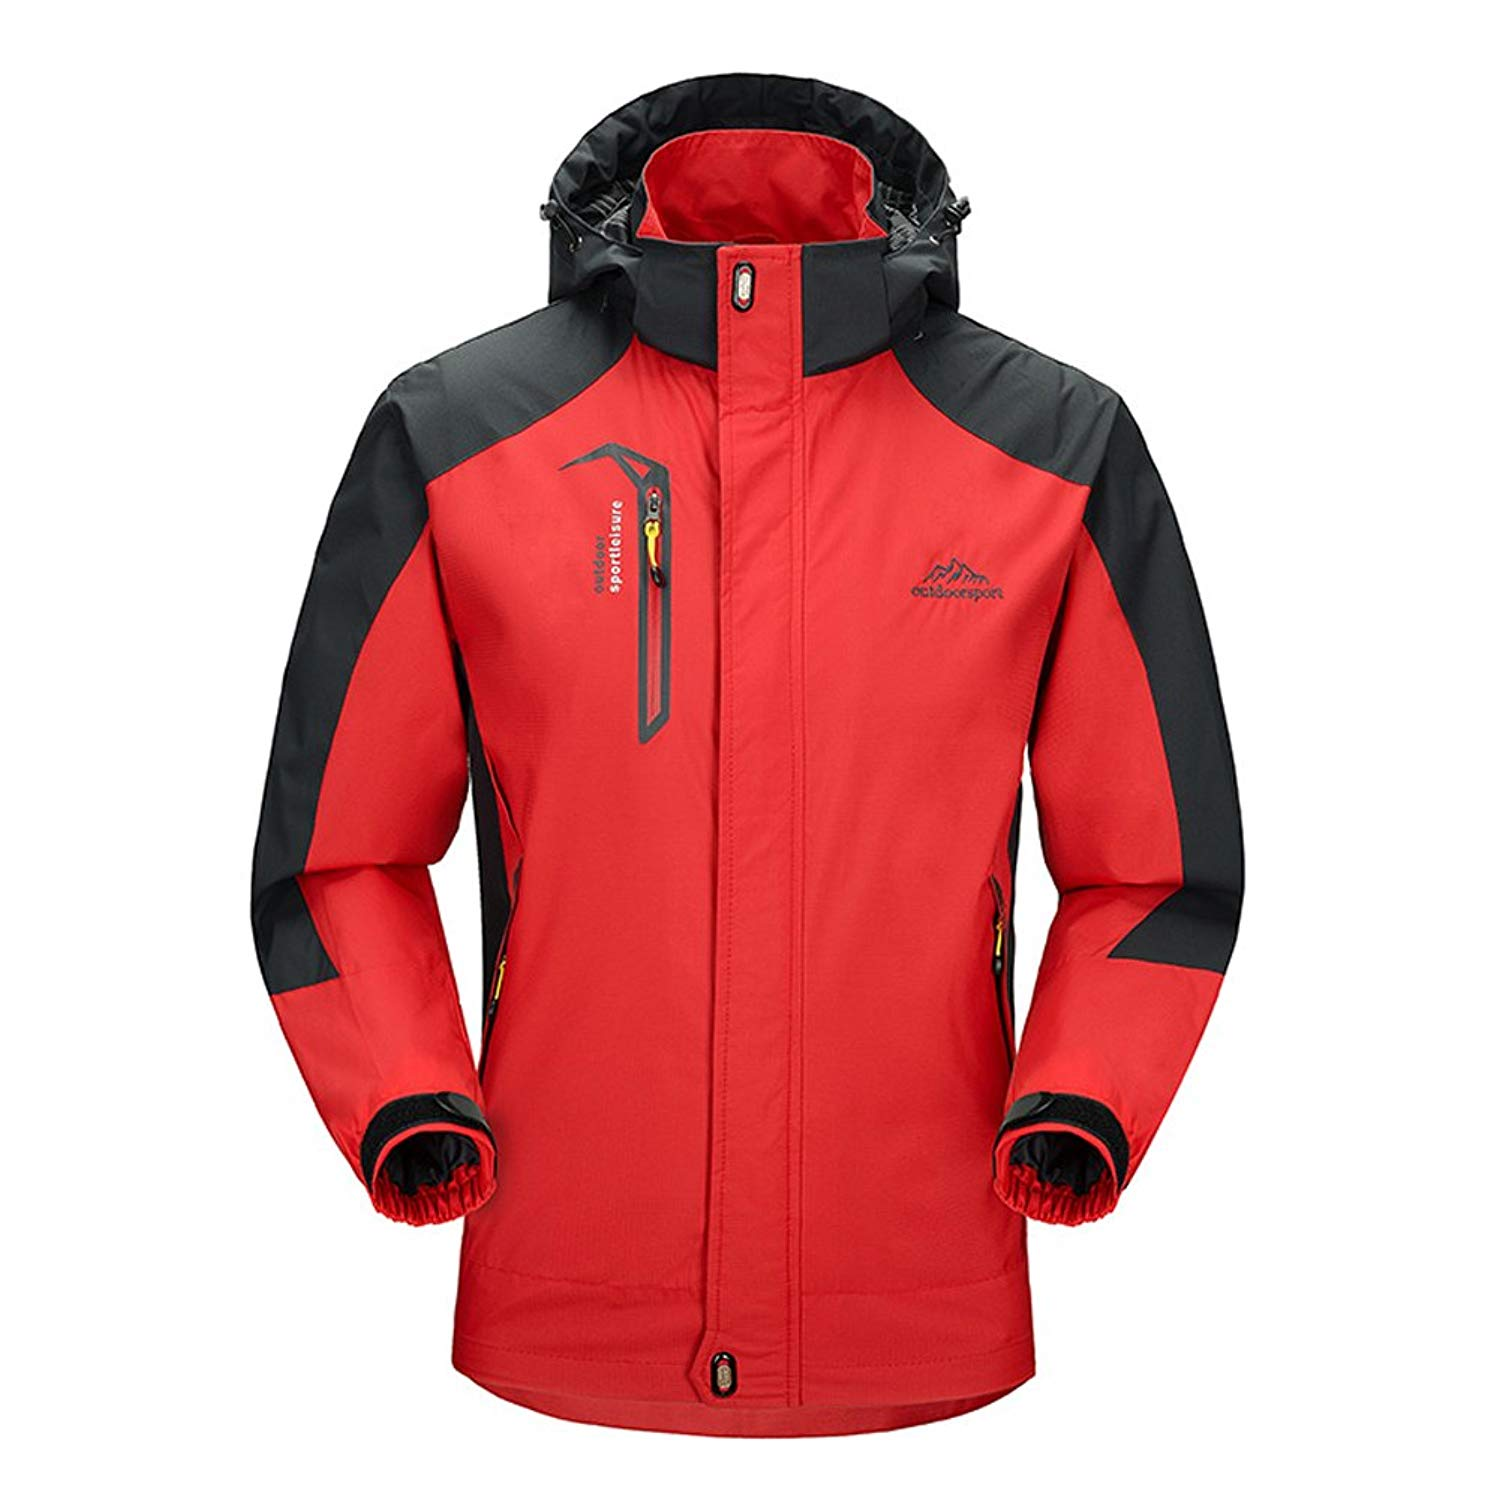 6ff323bb3156 Get Quotations · BIYLACLESEN Waterproof Jacket Mens Outdoor Lightweight  Softshell Hiking Rain Jackets